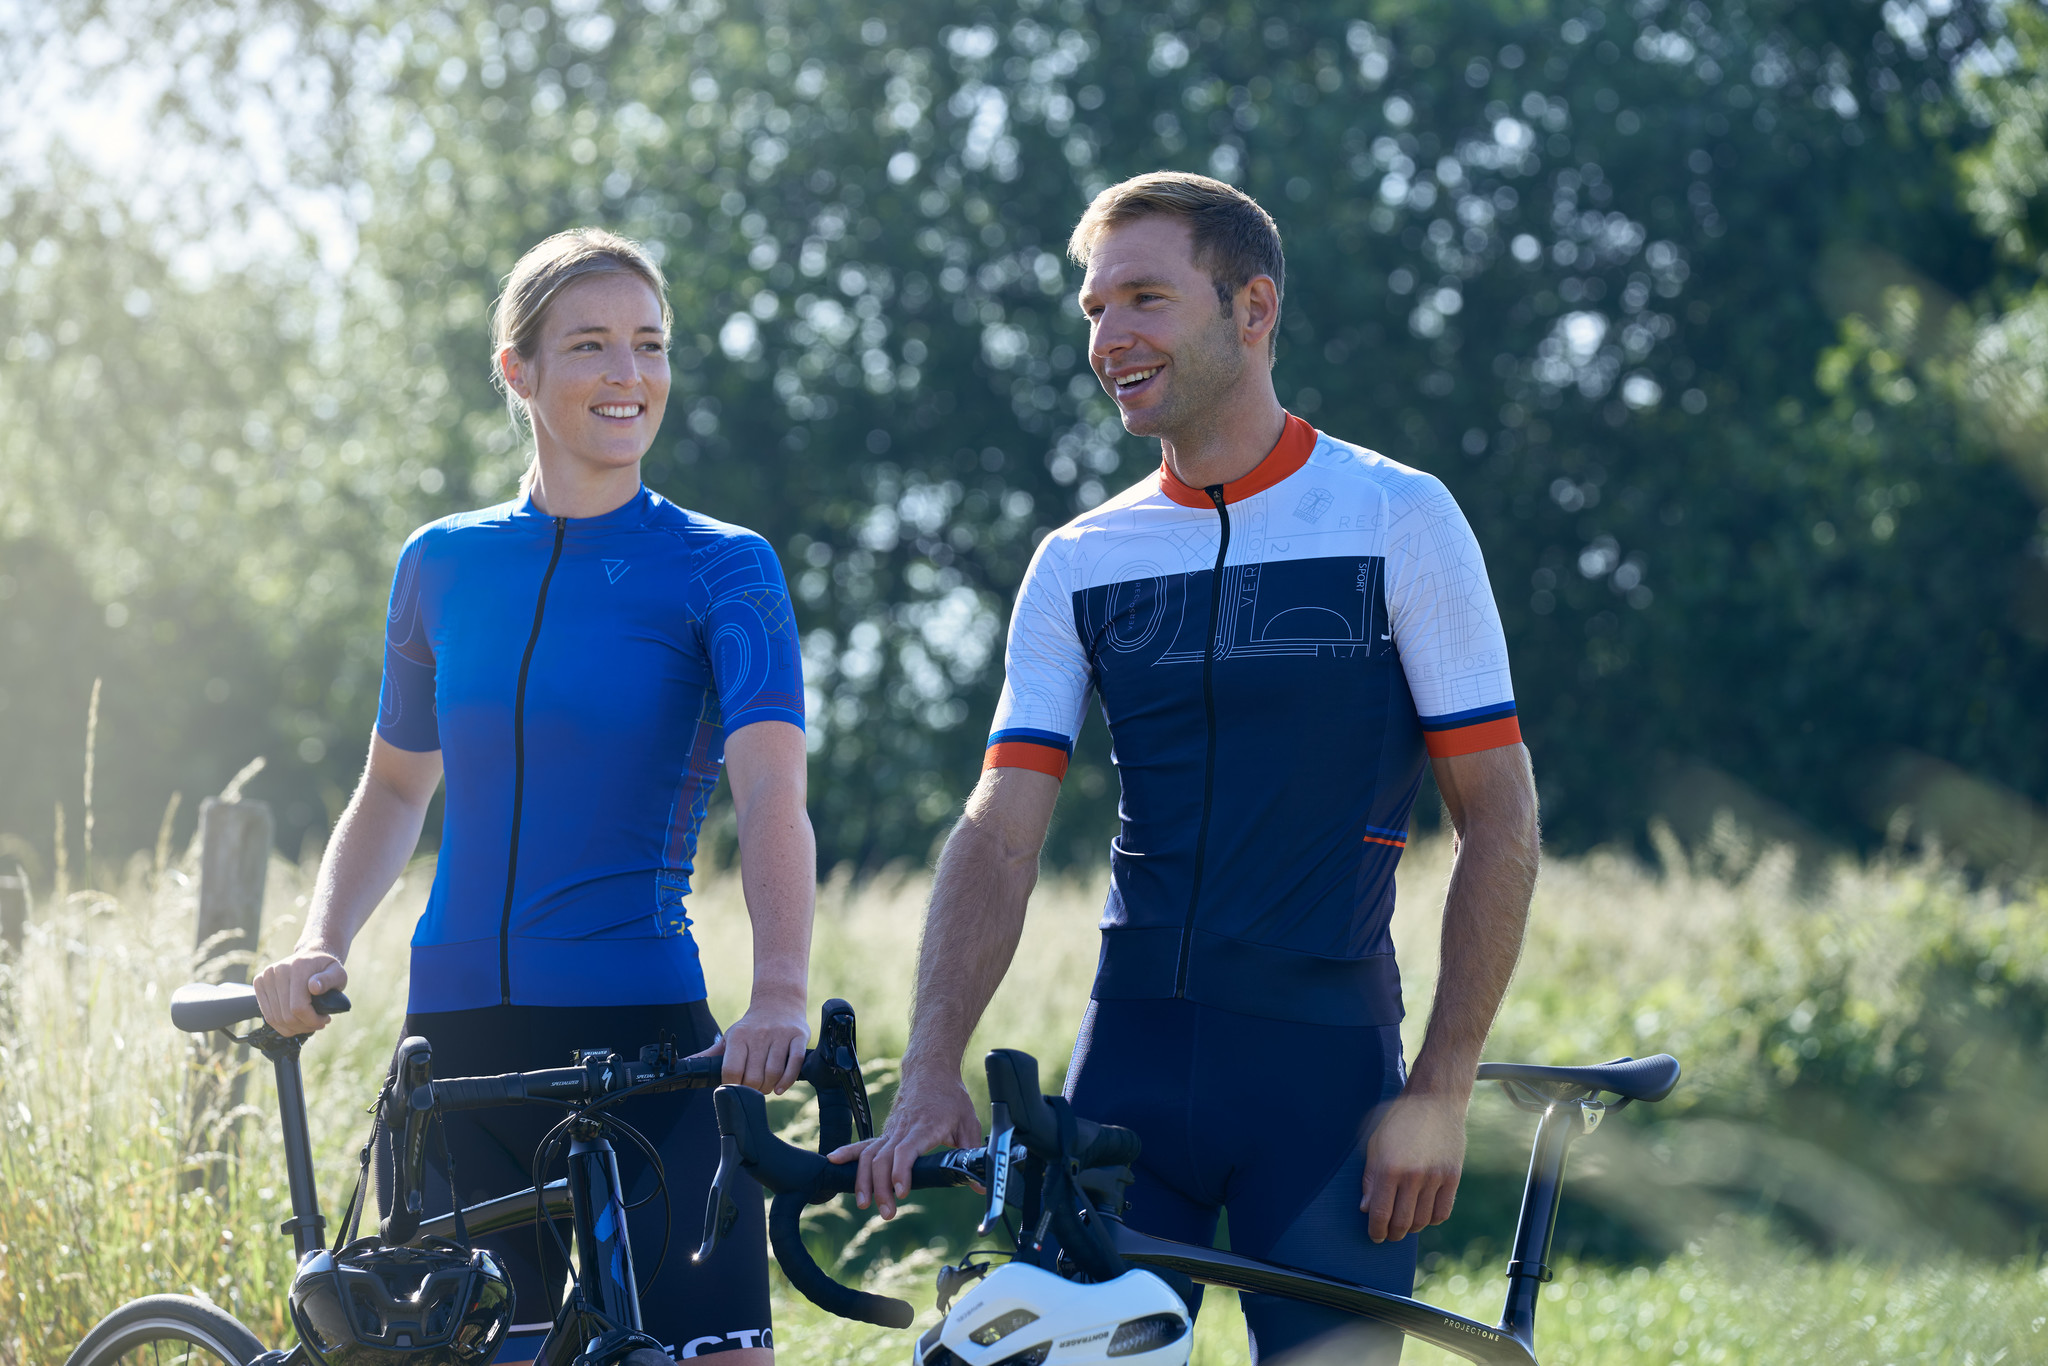 rv-x-bioracer-outfitmenandwomen-outdoor.jpg